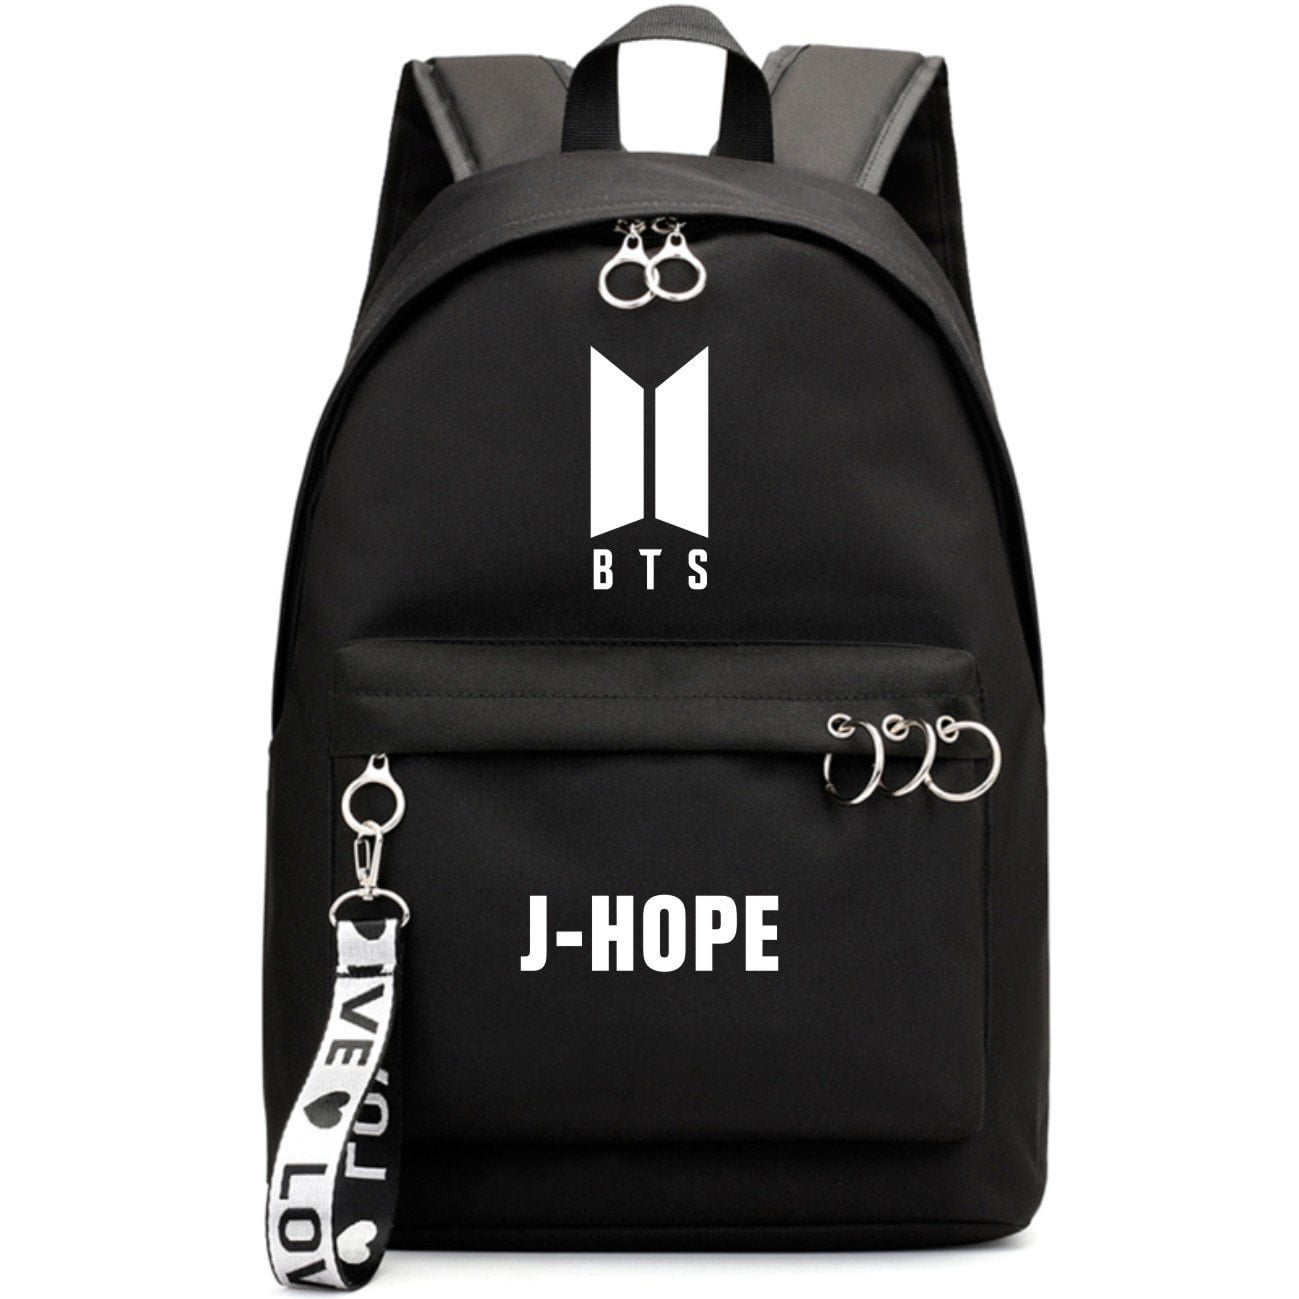 BTS New Logo Large Capacity Backpack / School Bag with Silver Rings in 2 Colours  583071224455#3925845045039